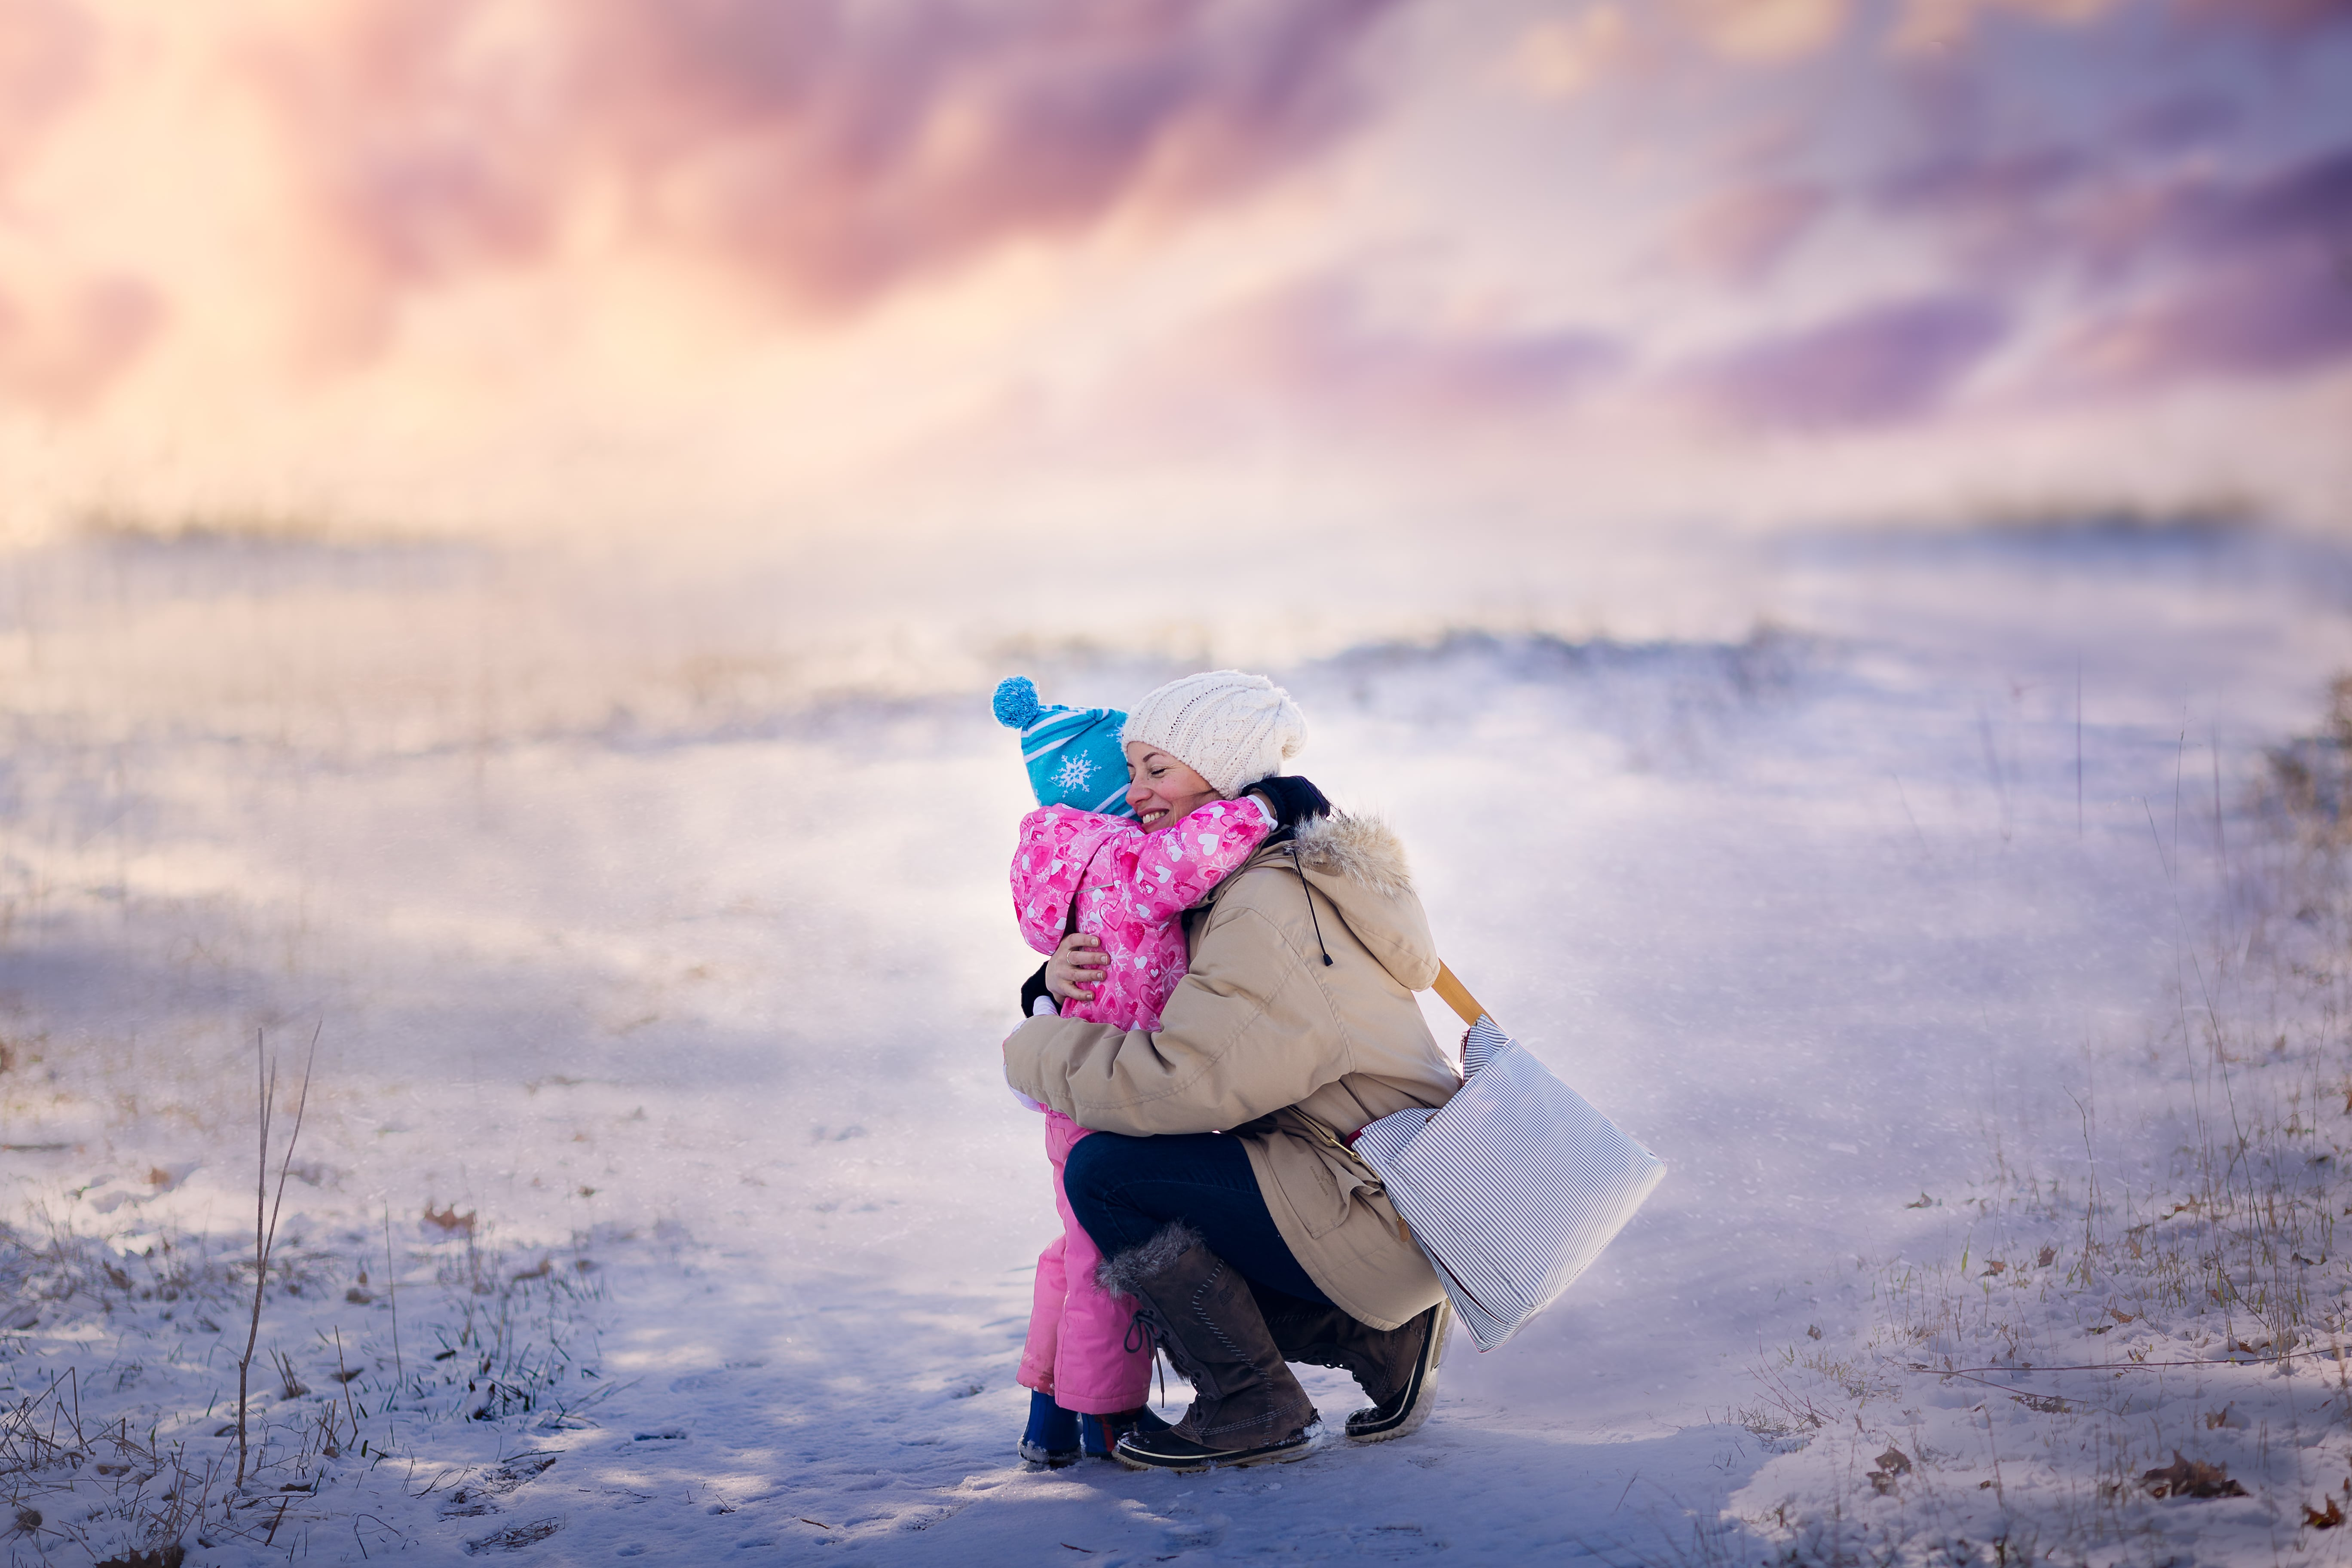 mother and daughter embrace in a snowy outdoor scene